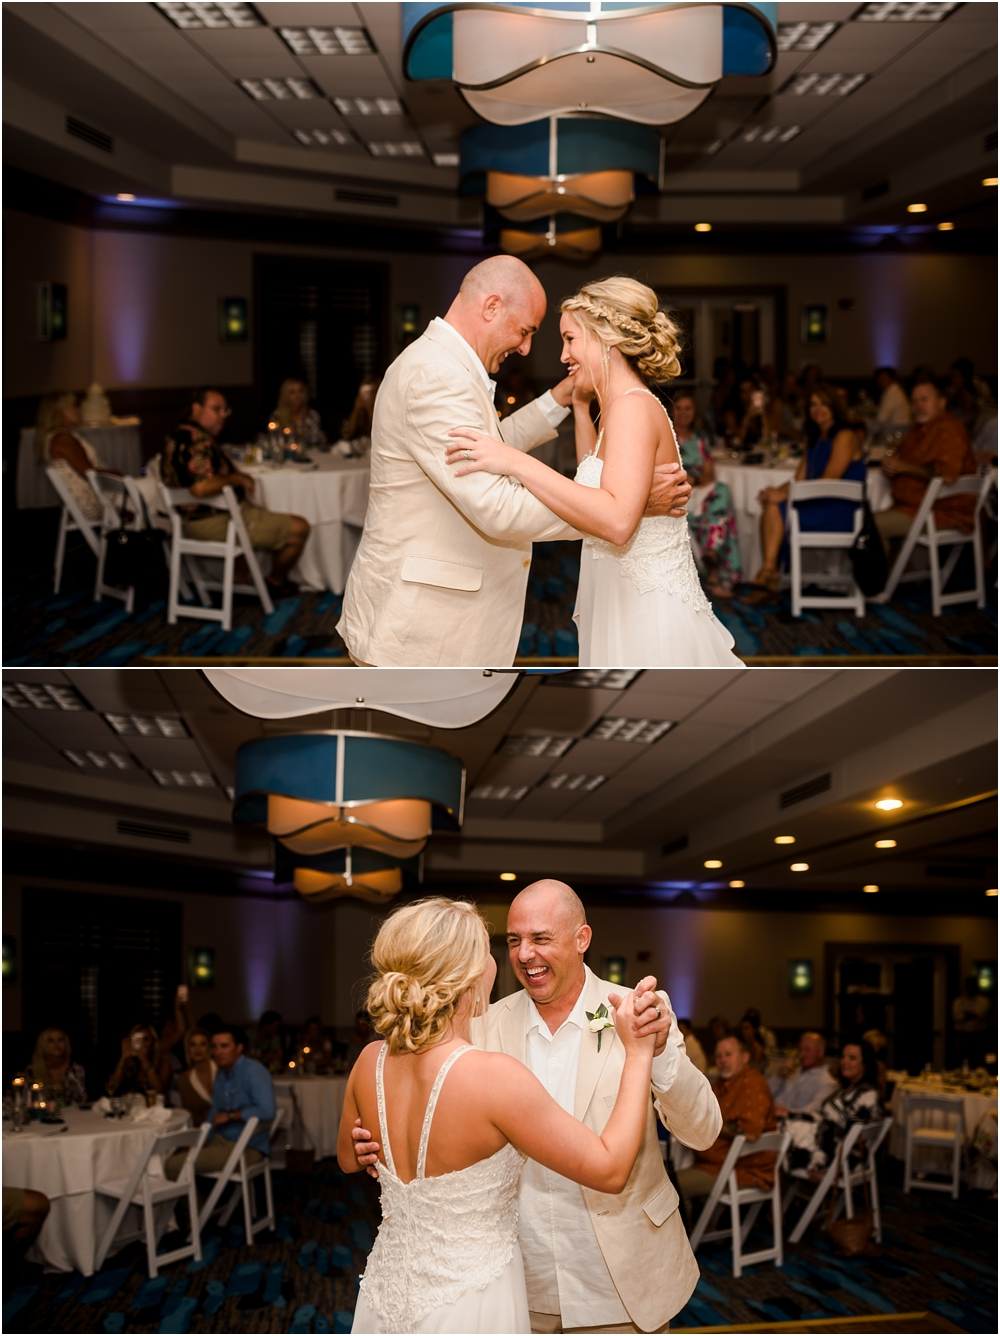 dillard-florida-wedding-photographer-panama-city-beach-dothan-tallahassee-kiersten-grant-photography-165.jpg